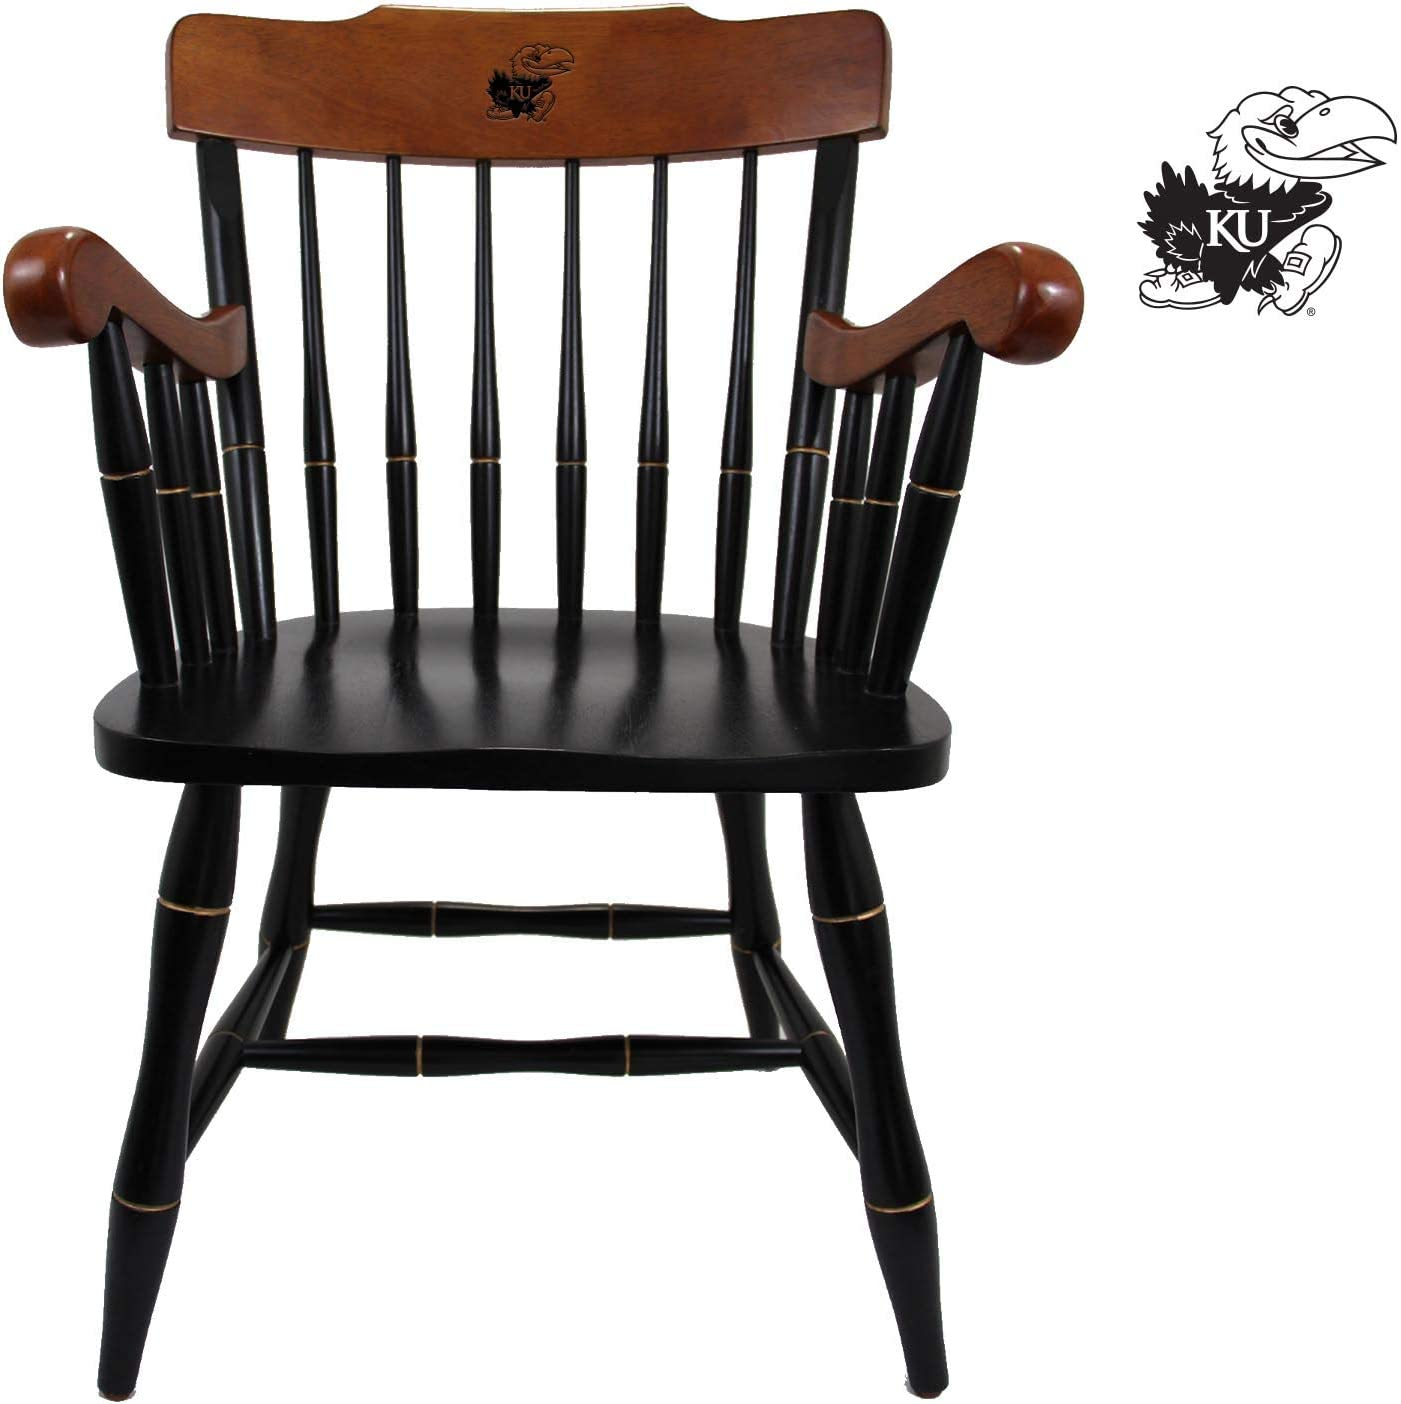 Cherry Crown with Cherry Arms Kansas Jayhawks Captains Office Desk Chair